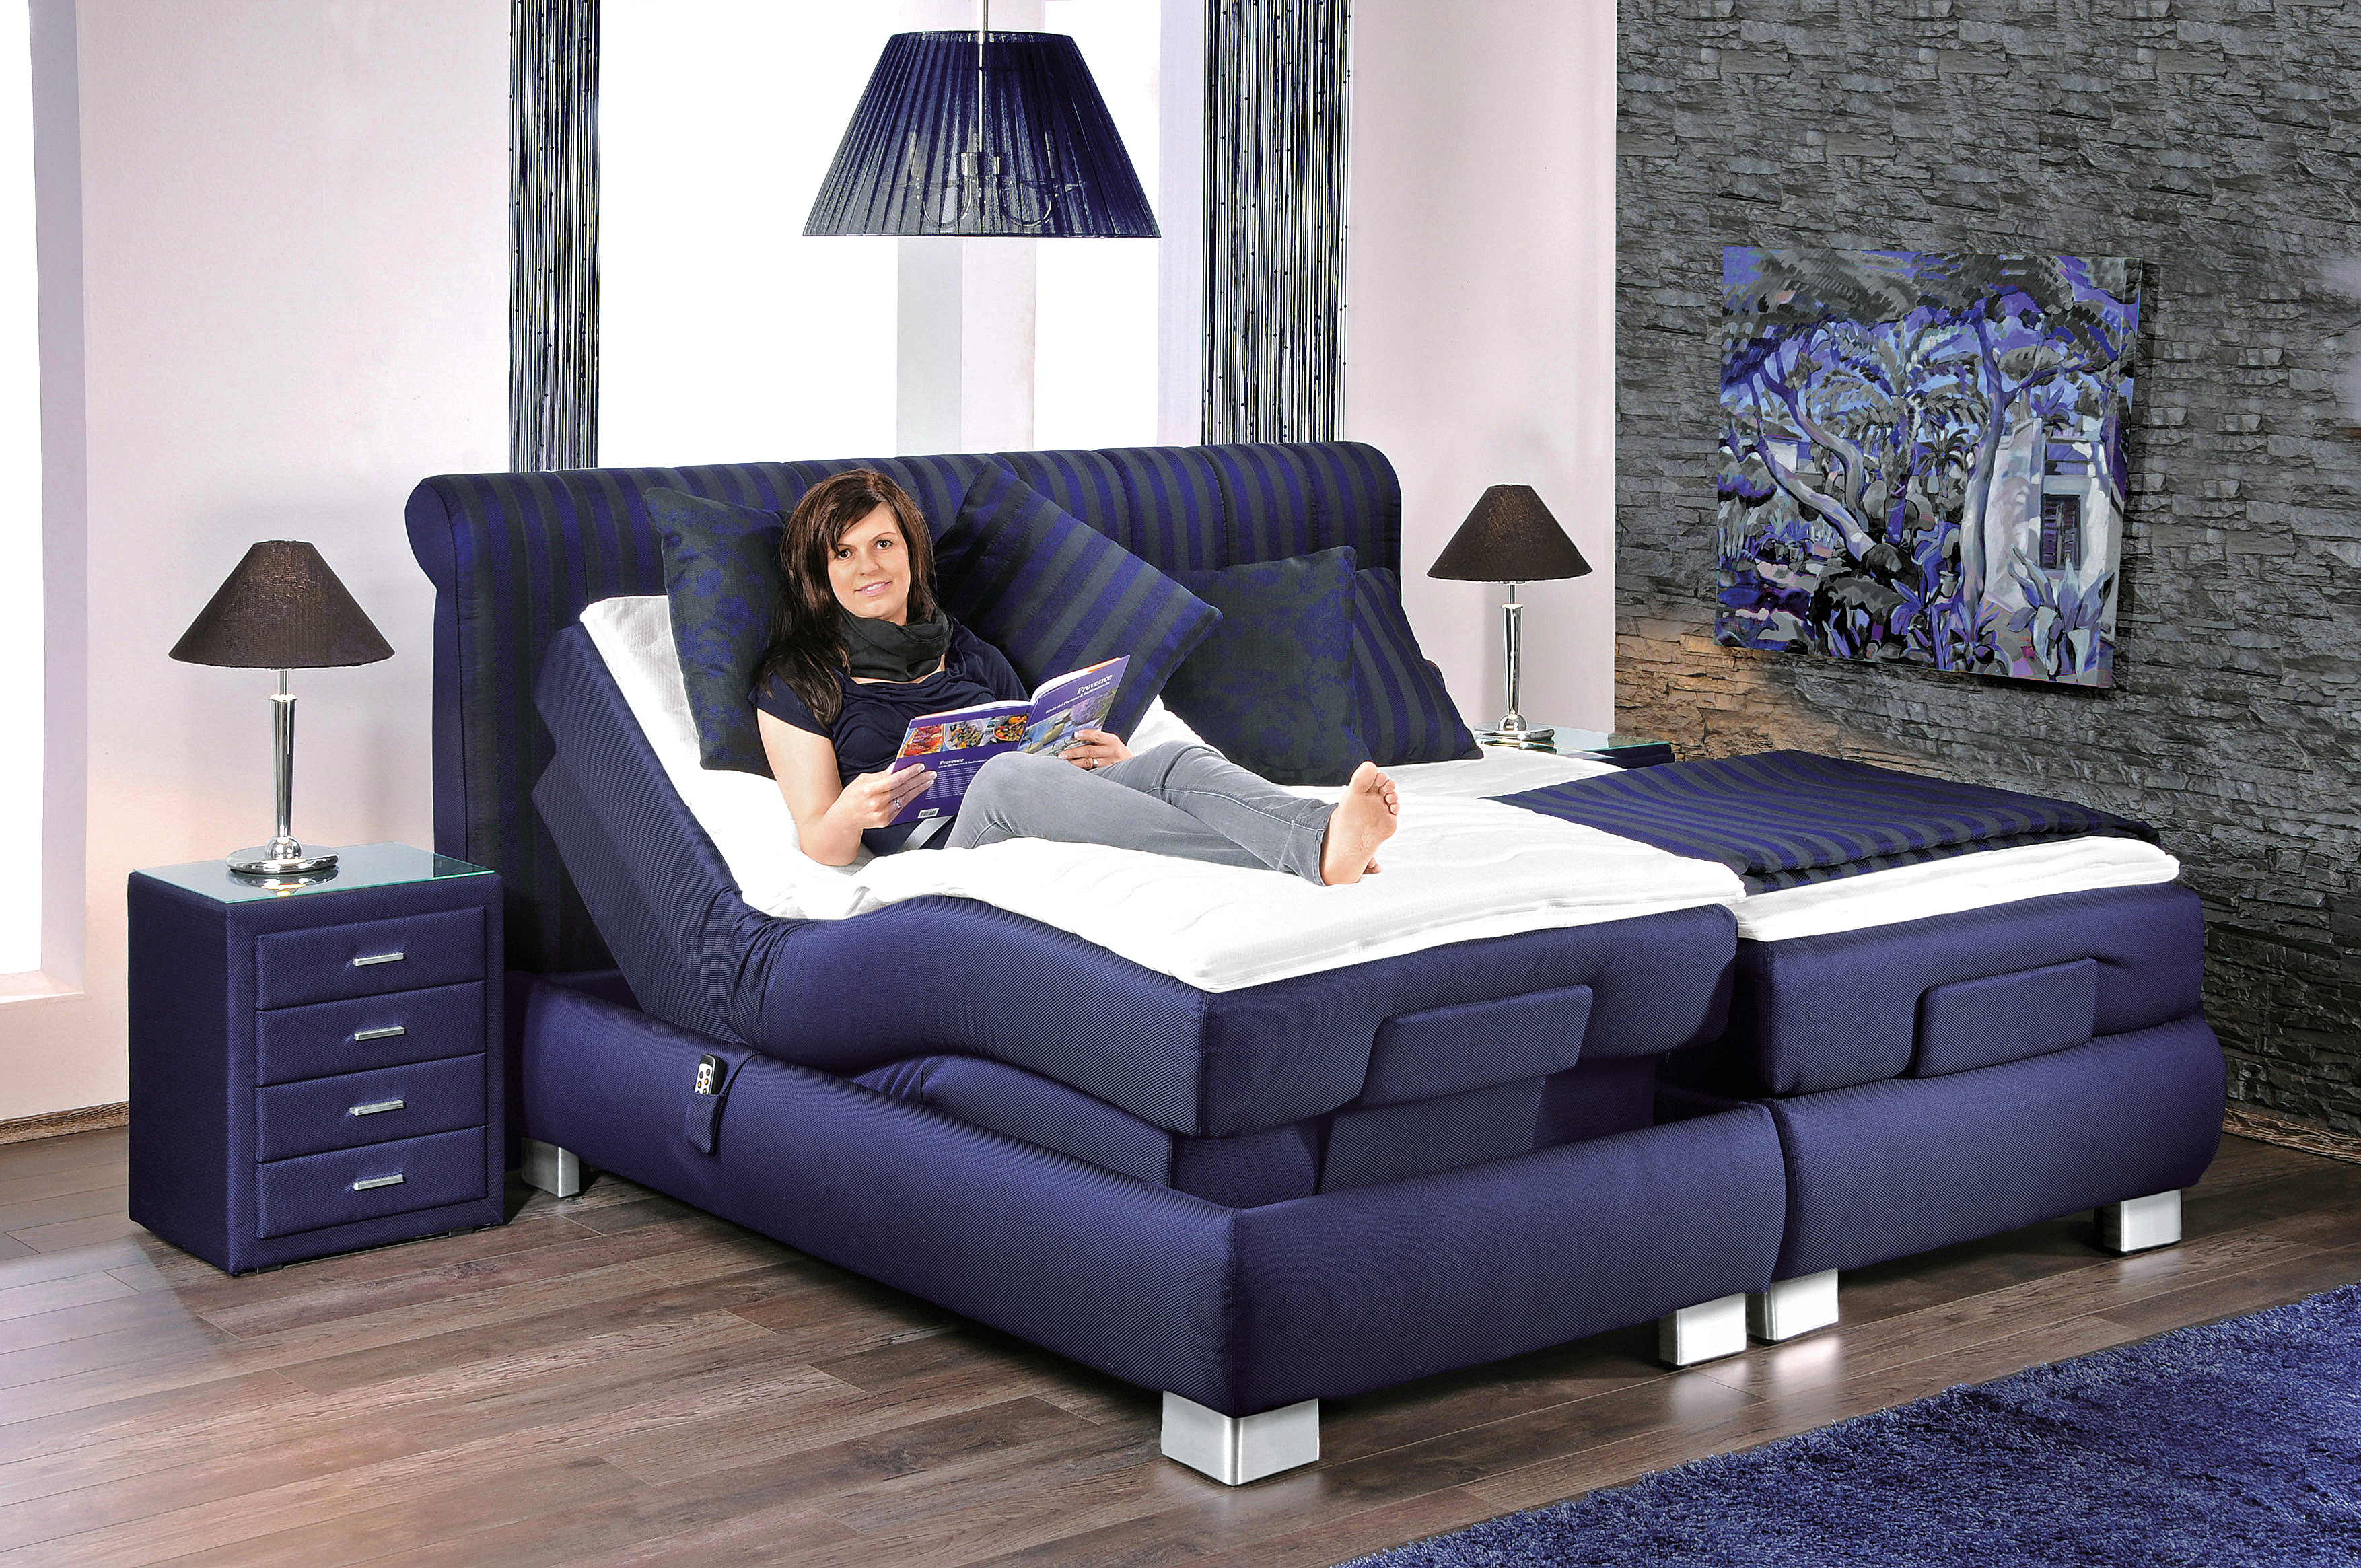 boxspringbett mit motor prestige von oschmann in blau m bel letz ihr online shop. Black Bedroom Furniture Sets. Home Design Ideas